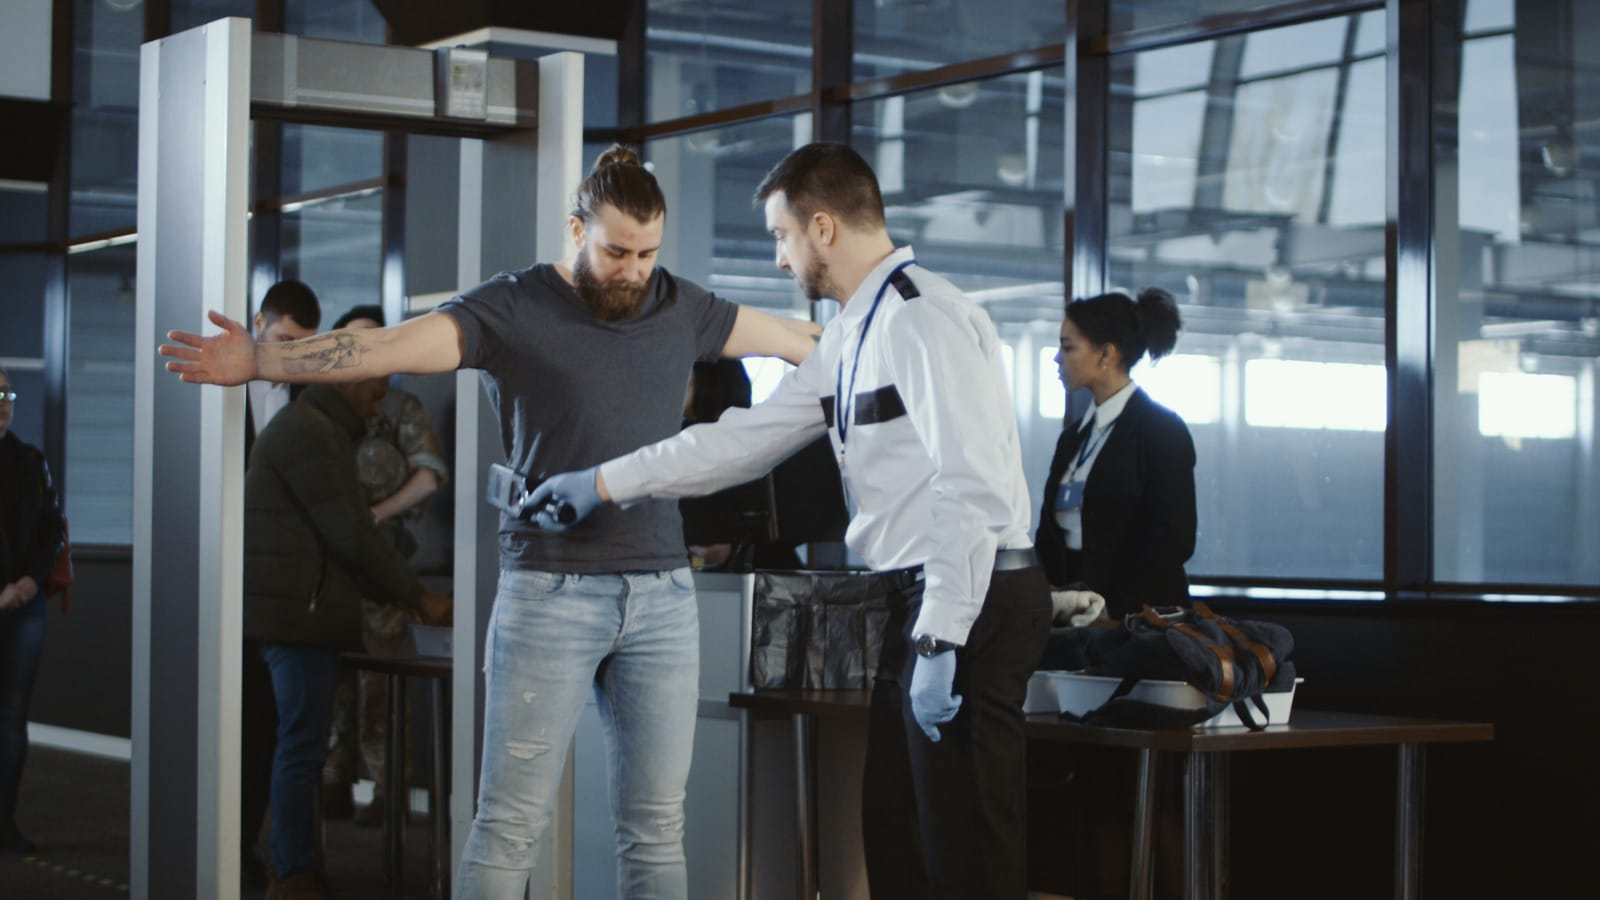 Man being screened with a metal detector at an airport.